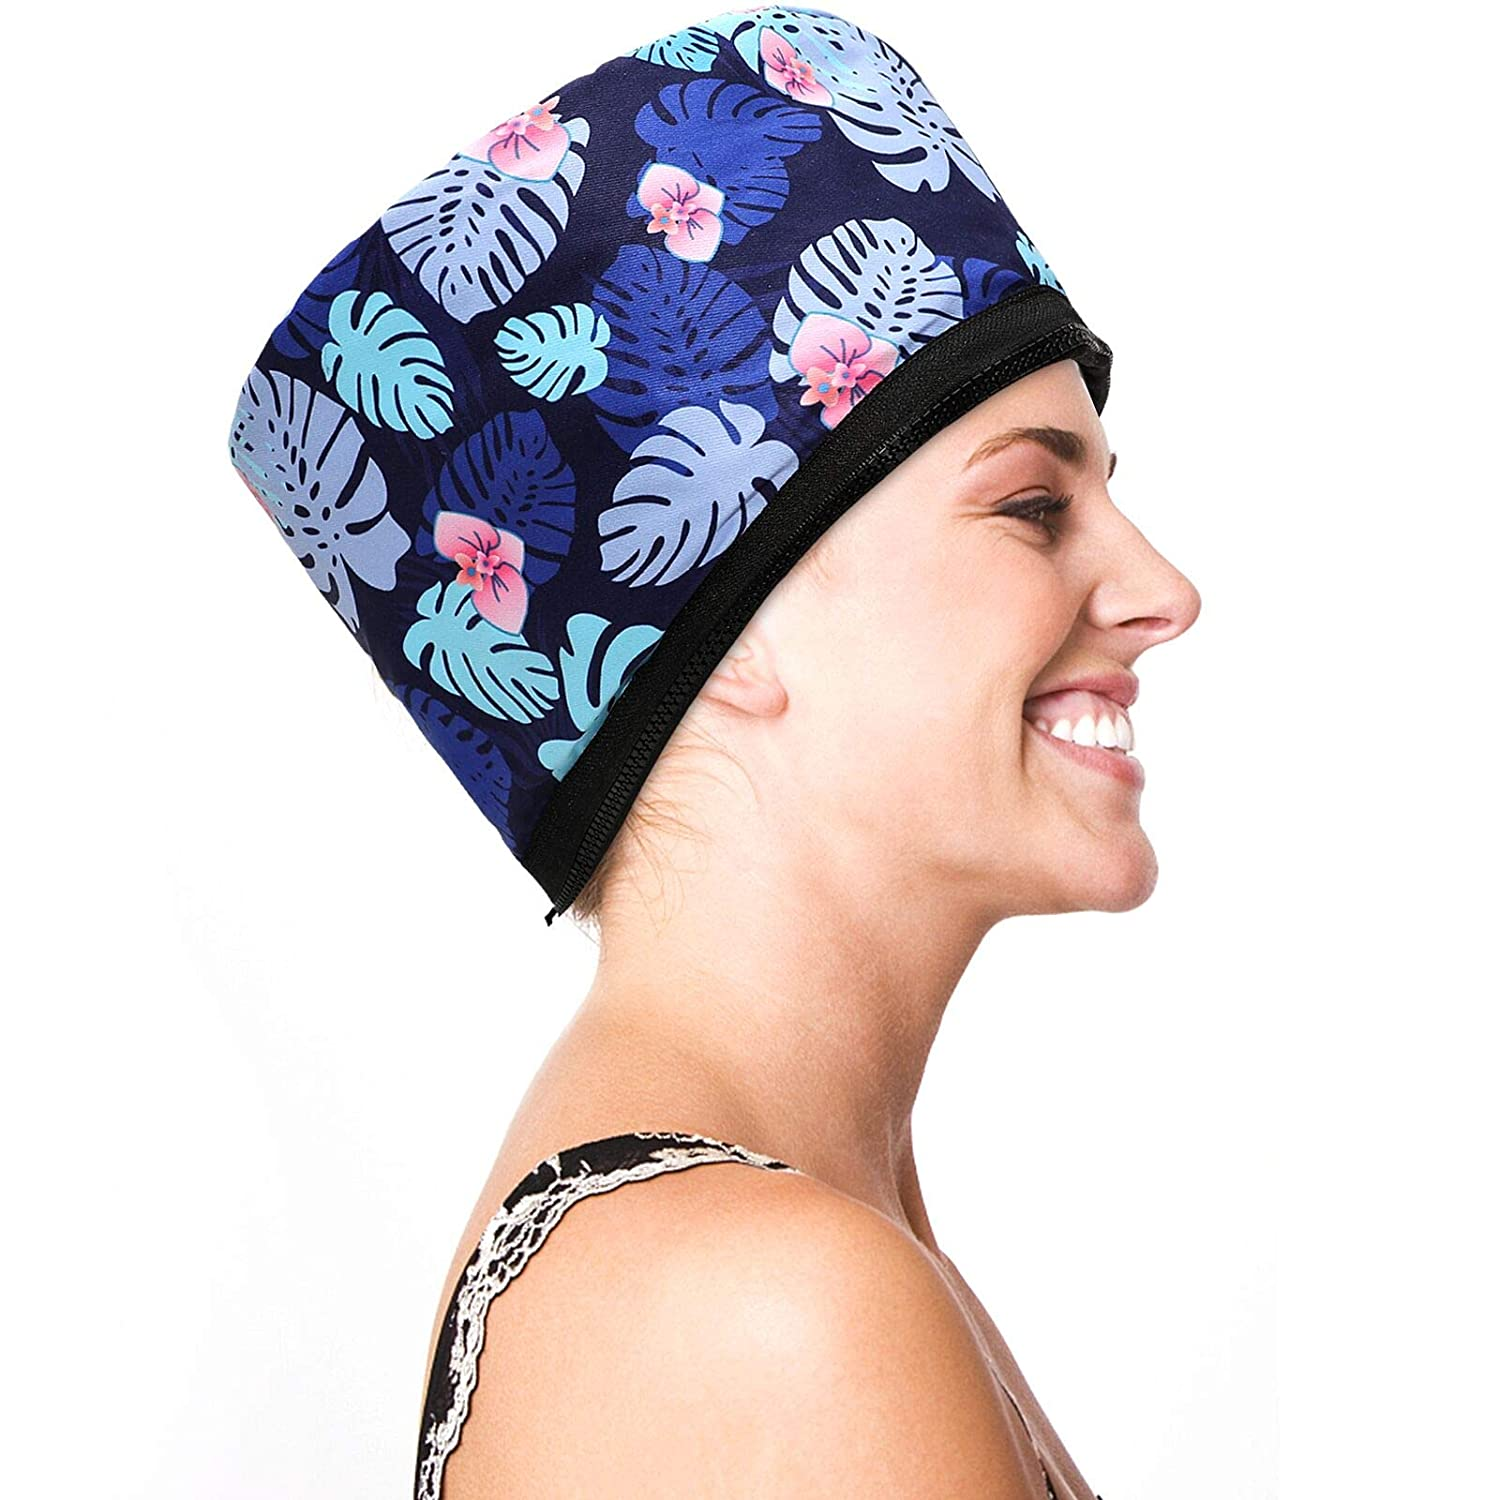 110V Electric Hair Cap Thermal Cap Hat Hair Thermal Treatment Cap with 2 Mode Temperature Control For Hair Spa Home Hair Thermal Treatment Nourishing Hair Care, Blue flower